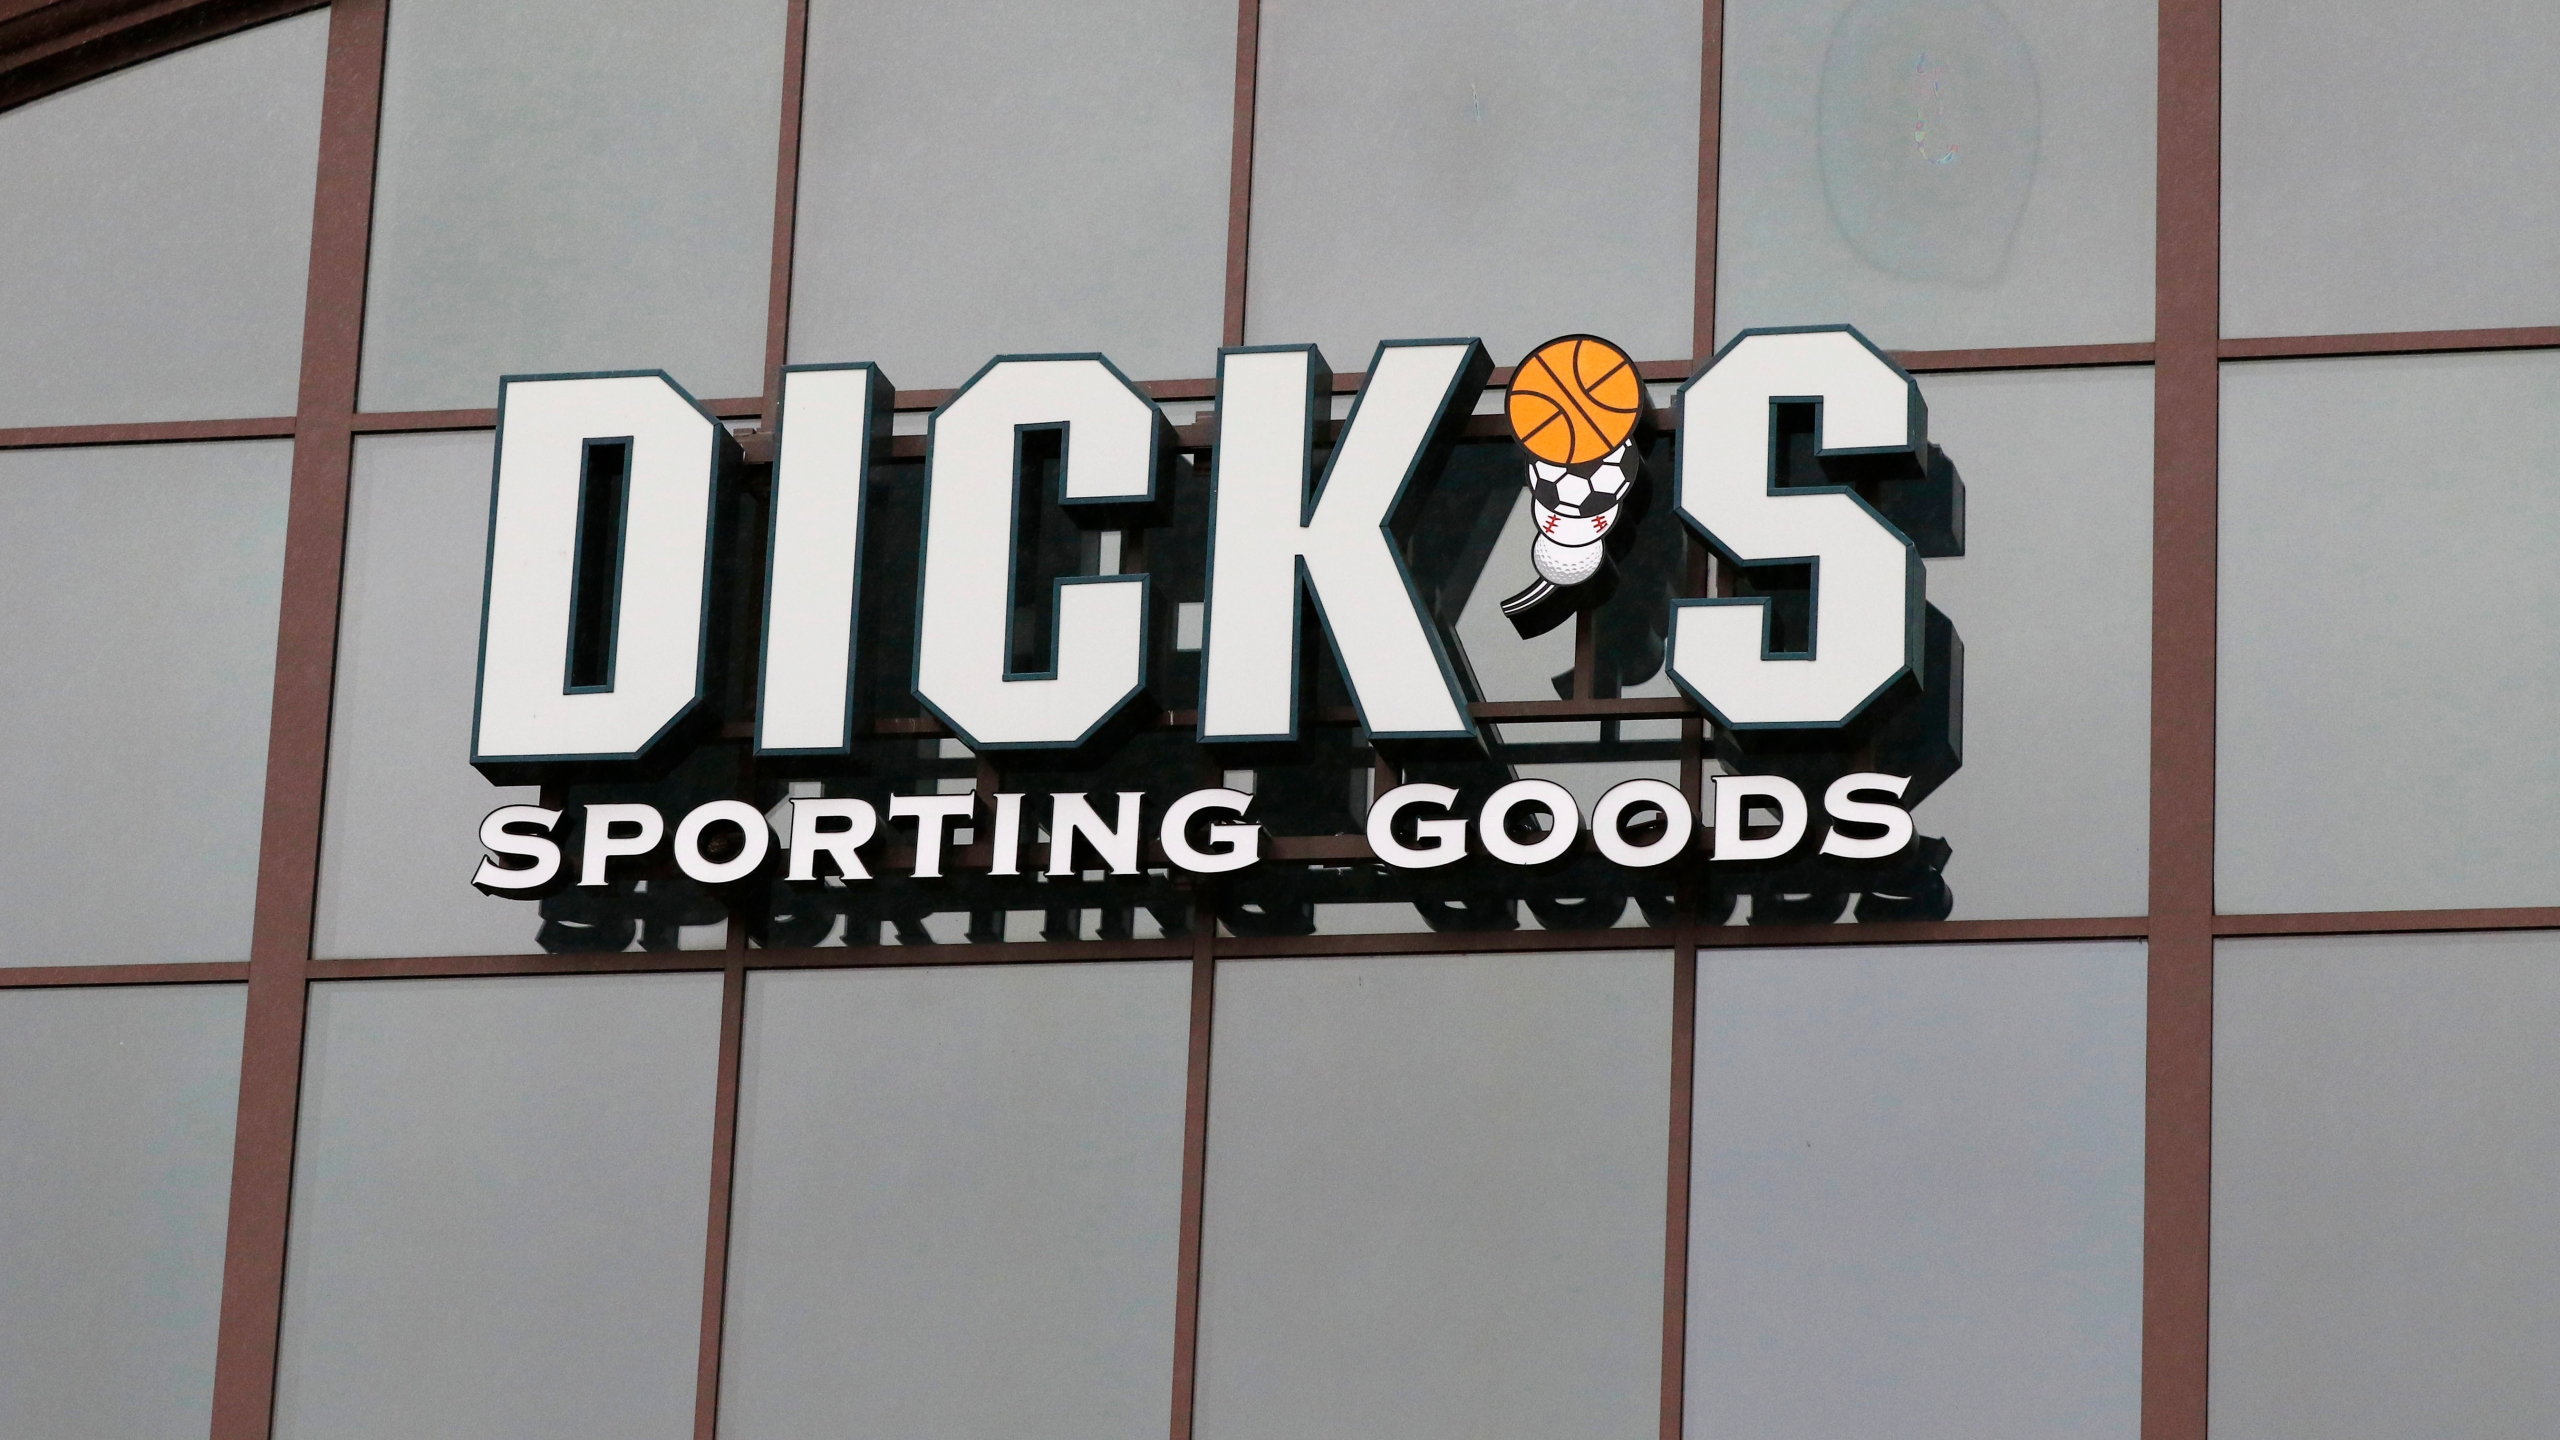 Earns_Dicks_Sporting_Goods_70265-159532.jpg19002990